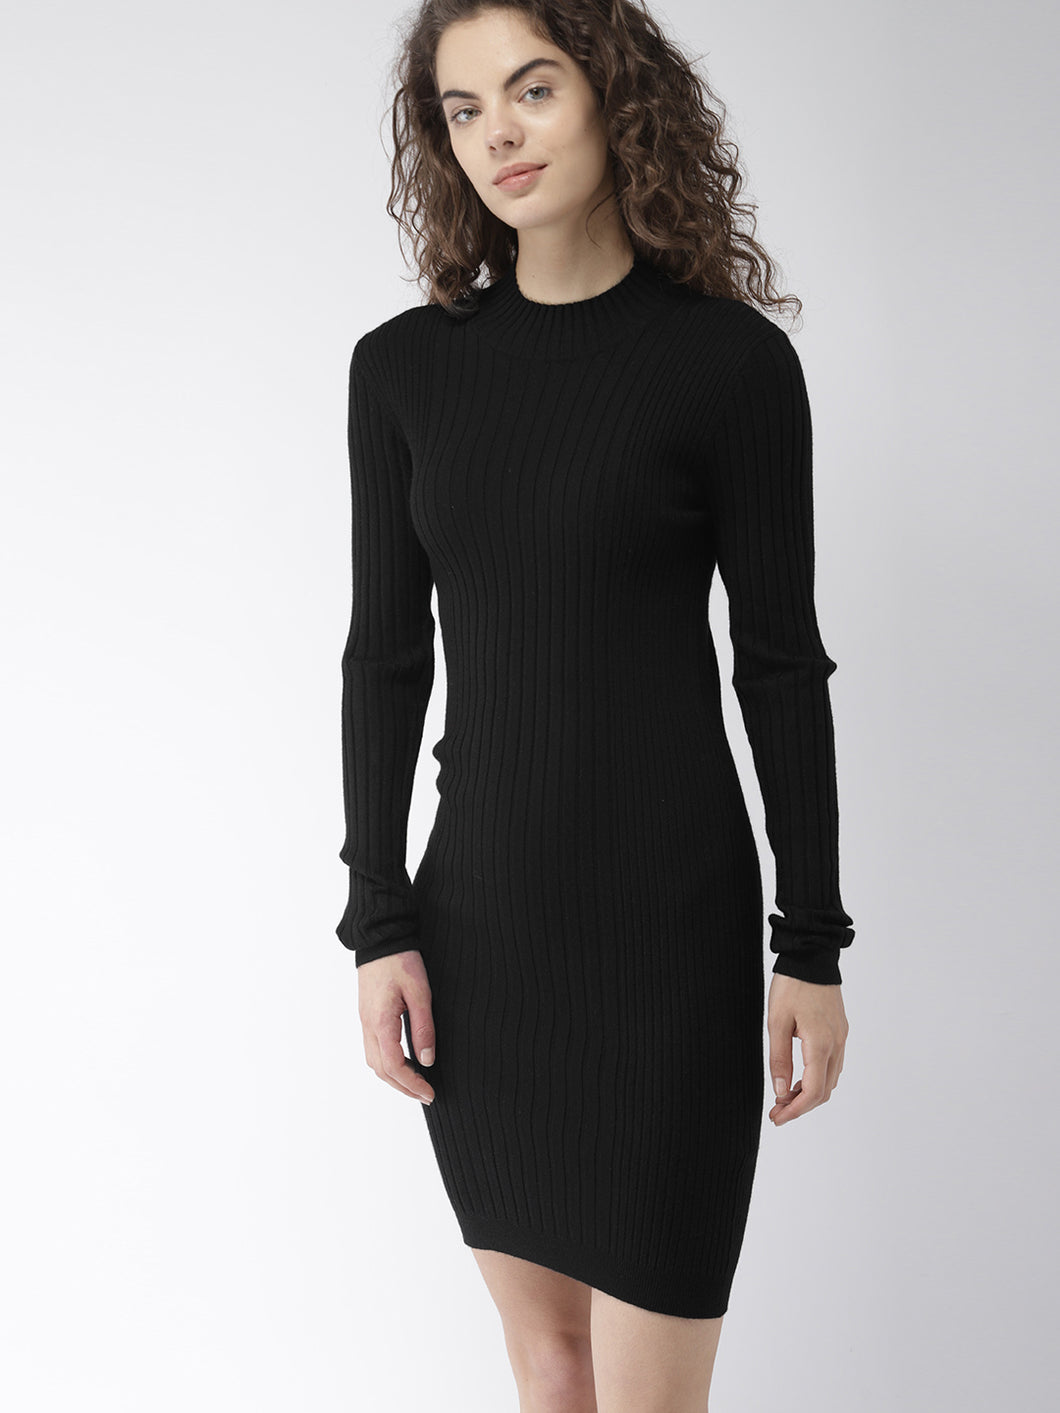 Women Black Self-Striped Sweater Dress